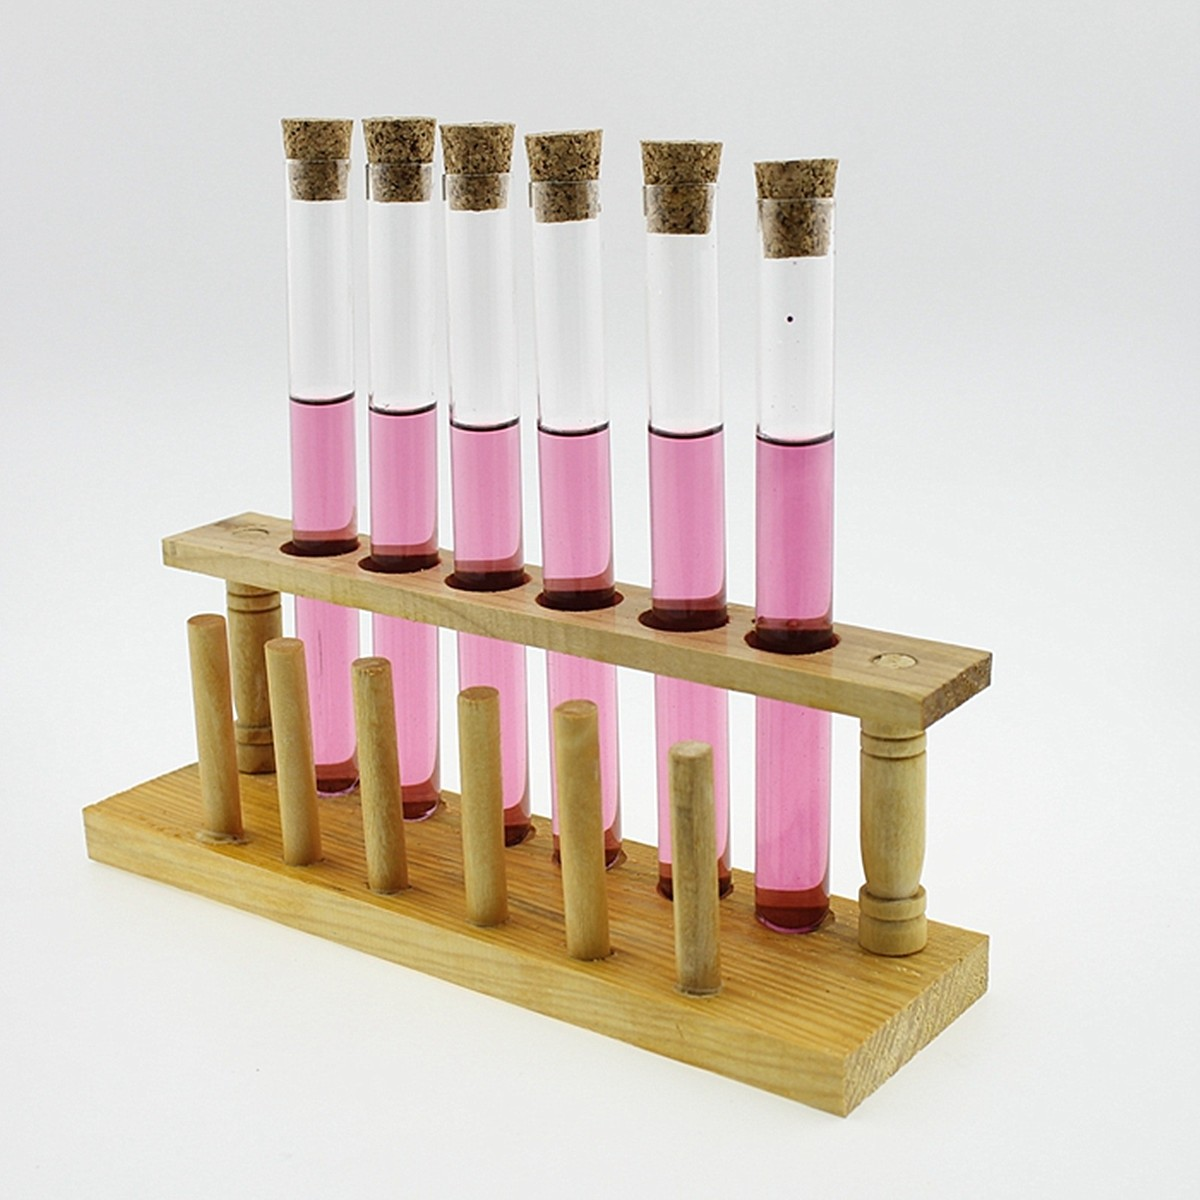 Laboratory Test Tube Rack 6 Holes Testing Tubes Clip Holder Stand Dropper Wood Lab SuppliesLaboratory Test Tube Rack 6 Holes Testing Tubes Clip Holder Stand Dropper Wood Lab Supplies